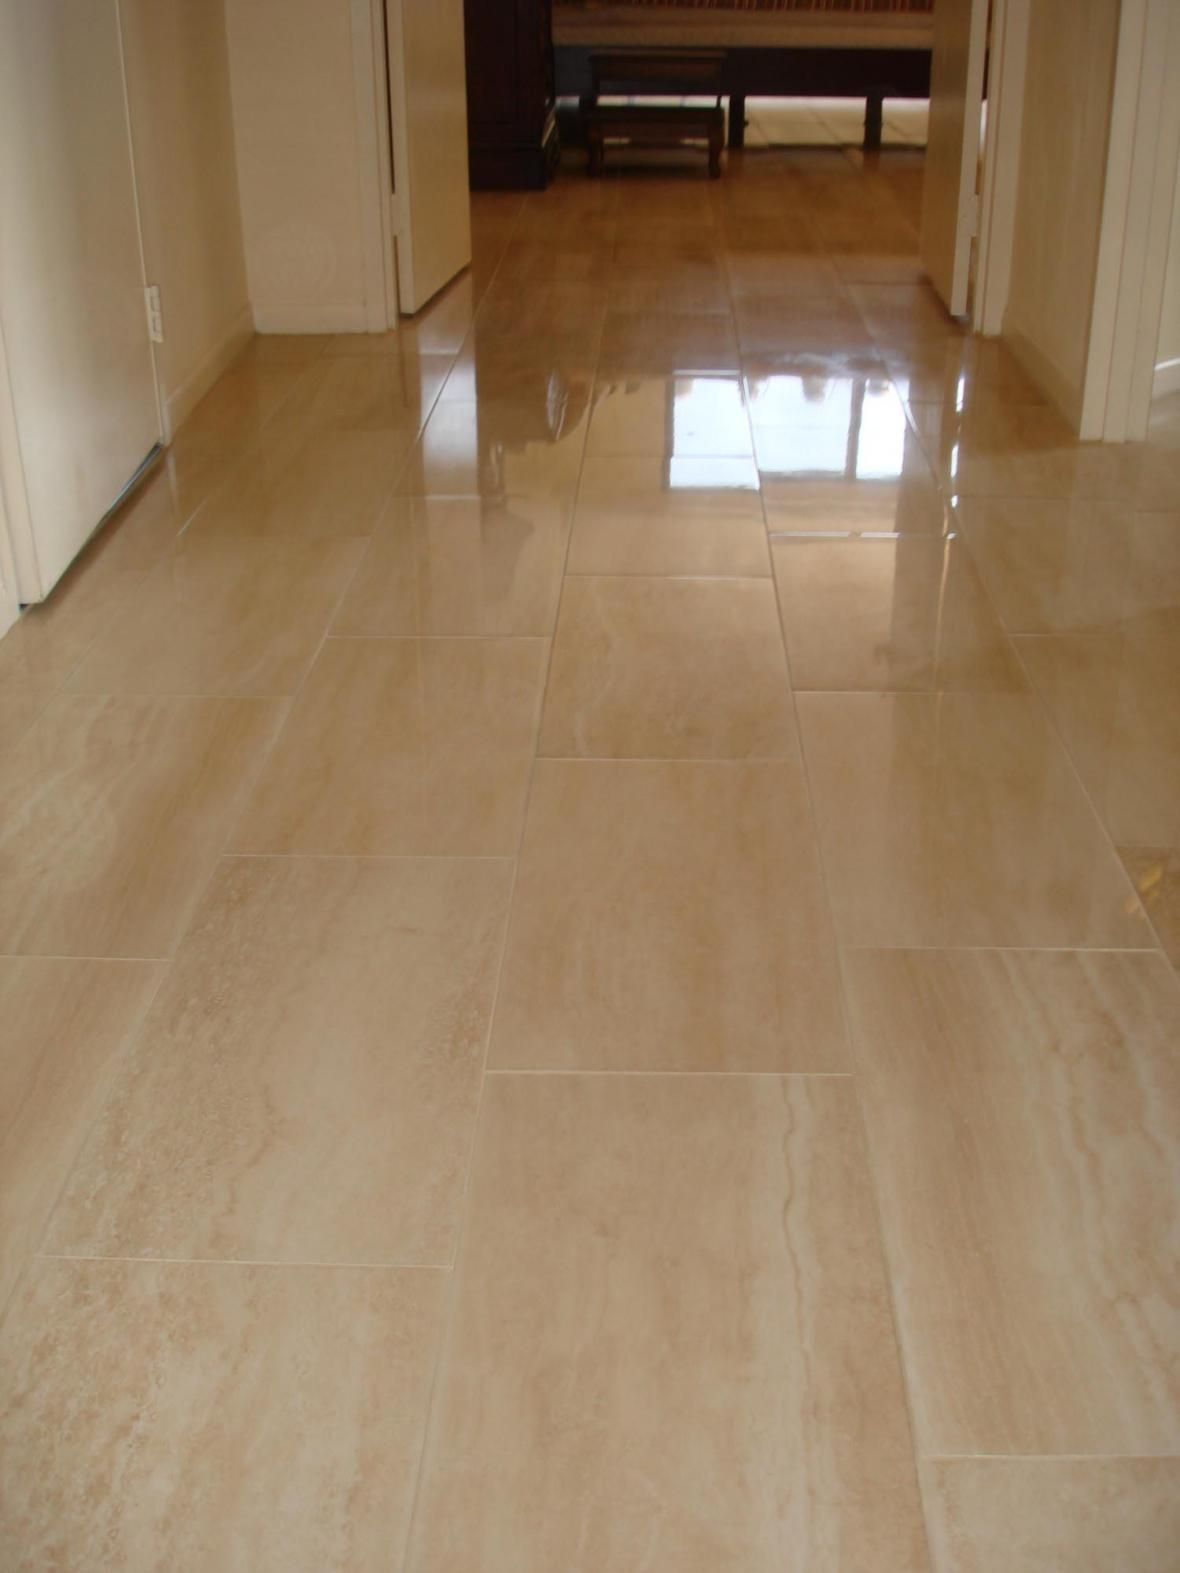 Porcelain flooring porcelain tile floor in hallway house porcelain flooring porcelain tile floor in hallway dailygadgetfo Images